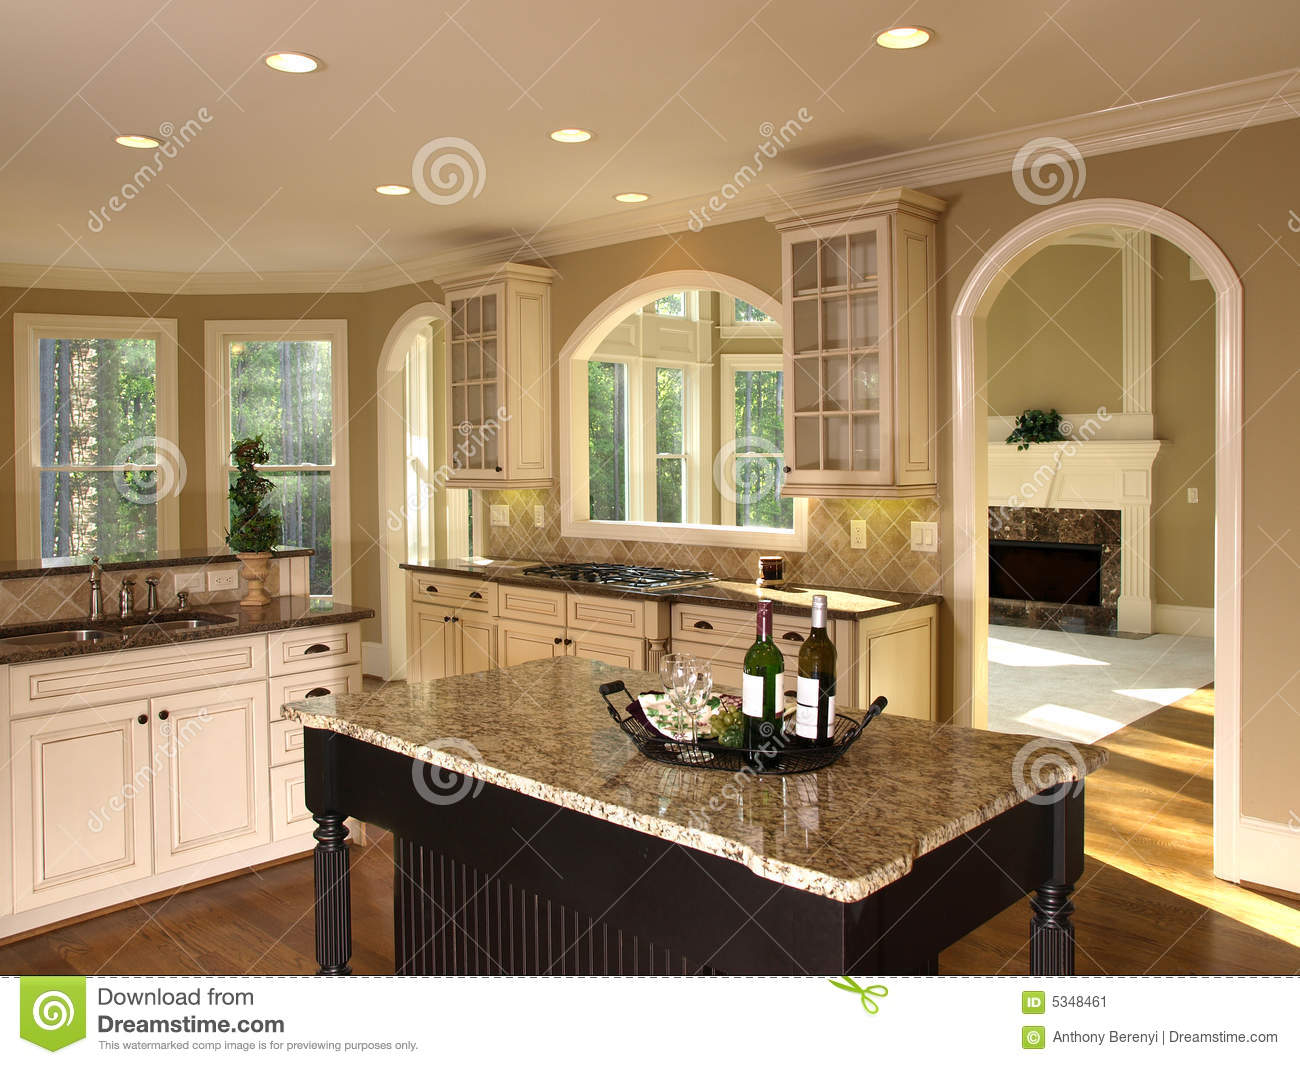 Luxury model home kitchen island stock image image of for Luxury home models